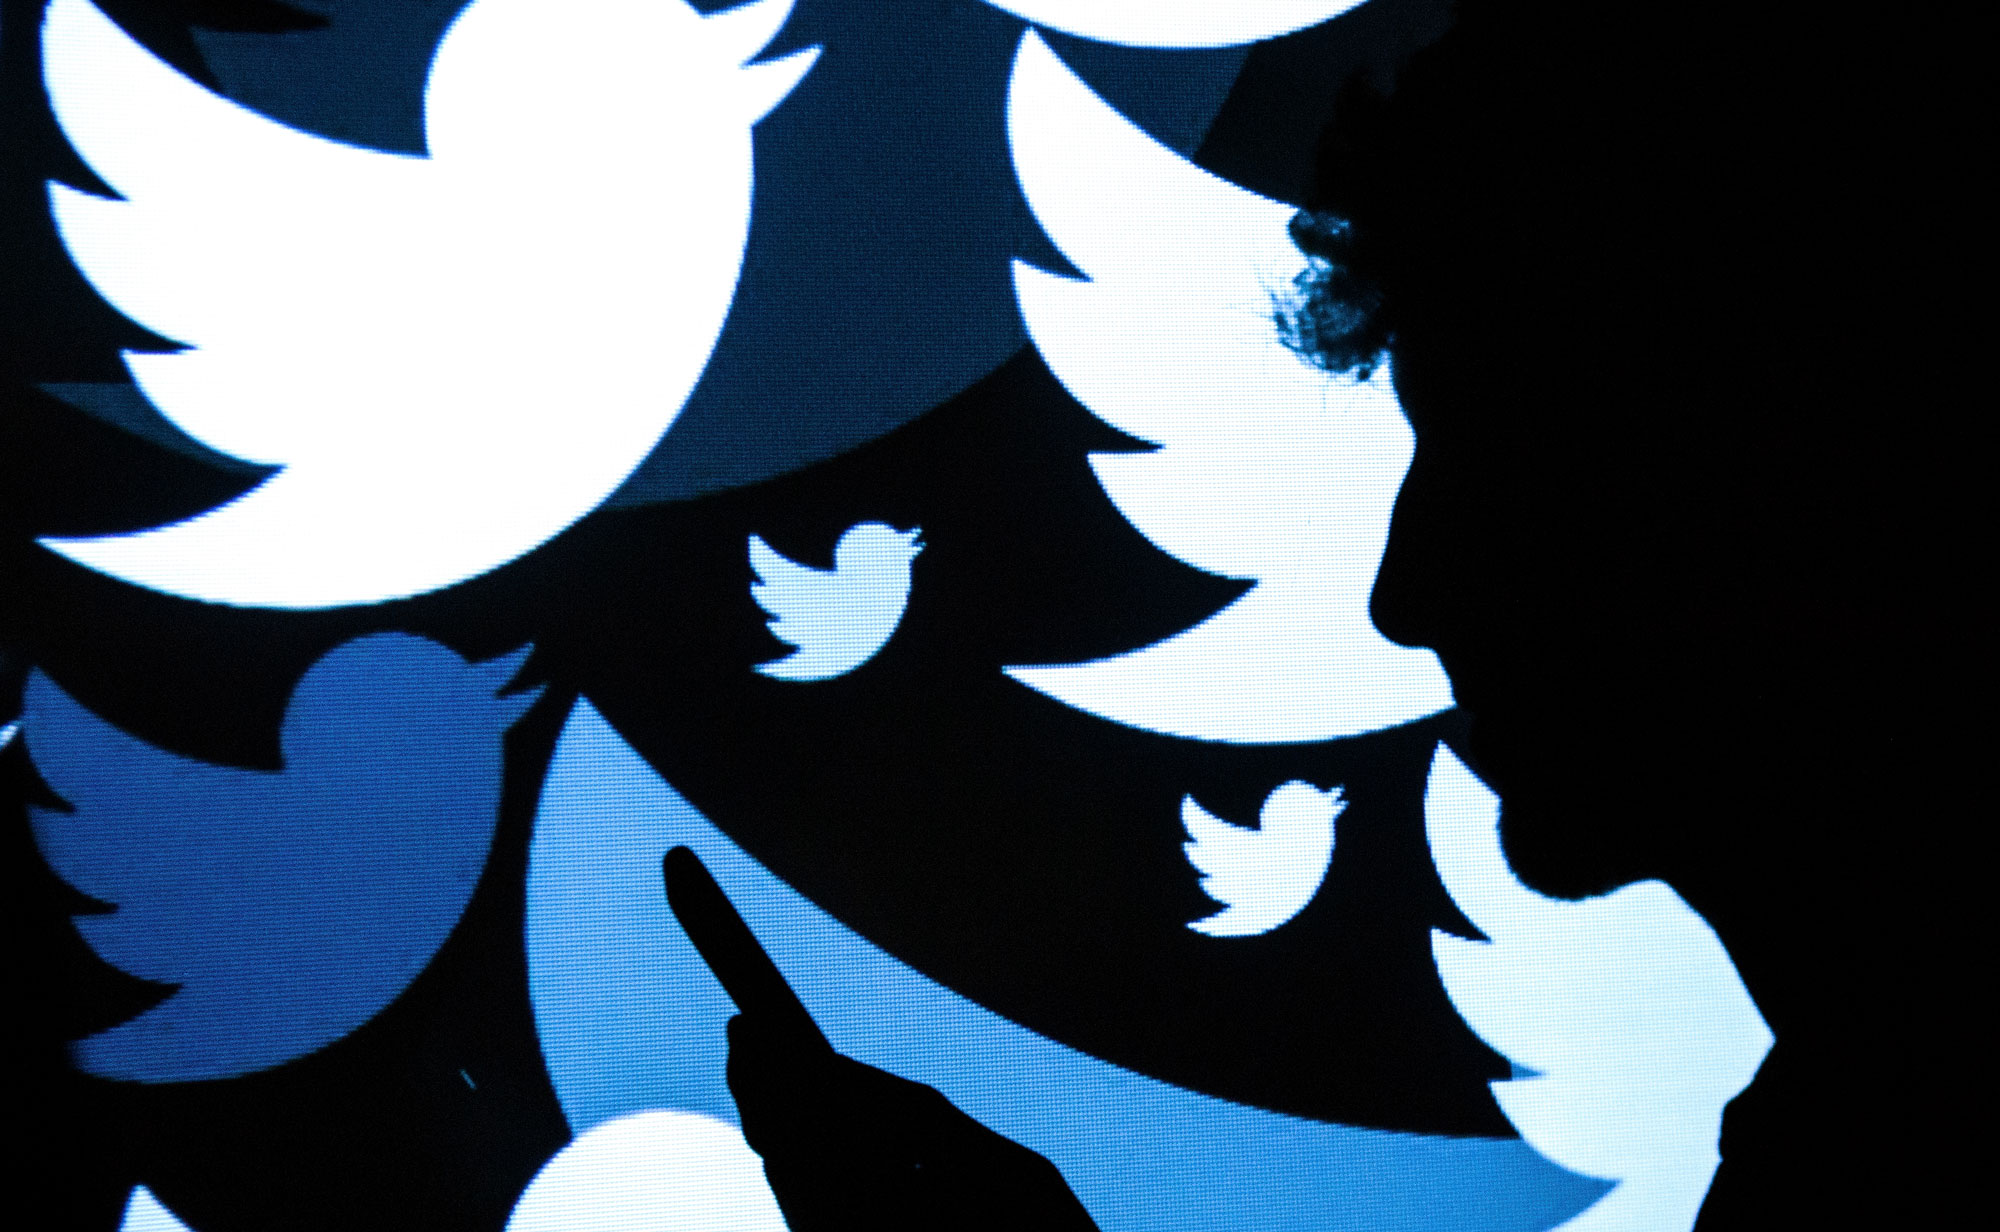 A silhouette of a man standing in front of a screen with Twitter logos on it